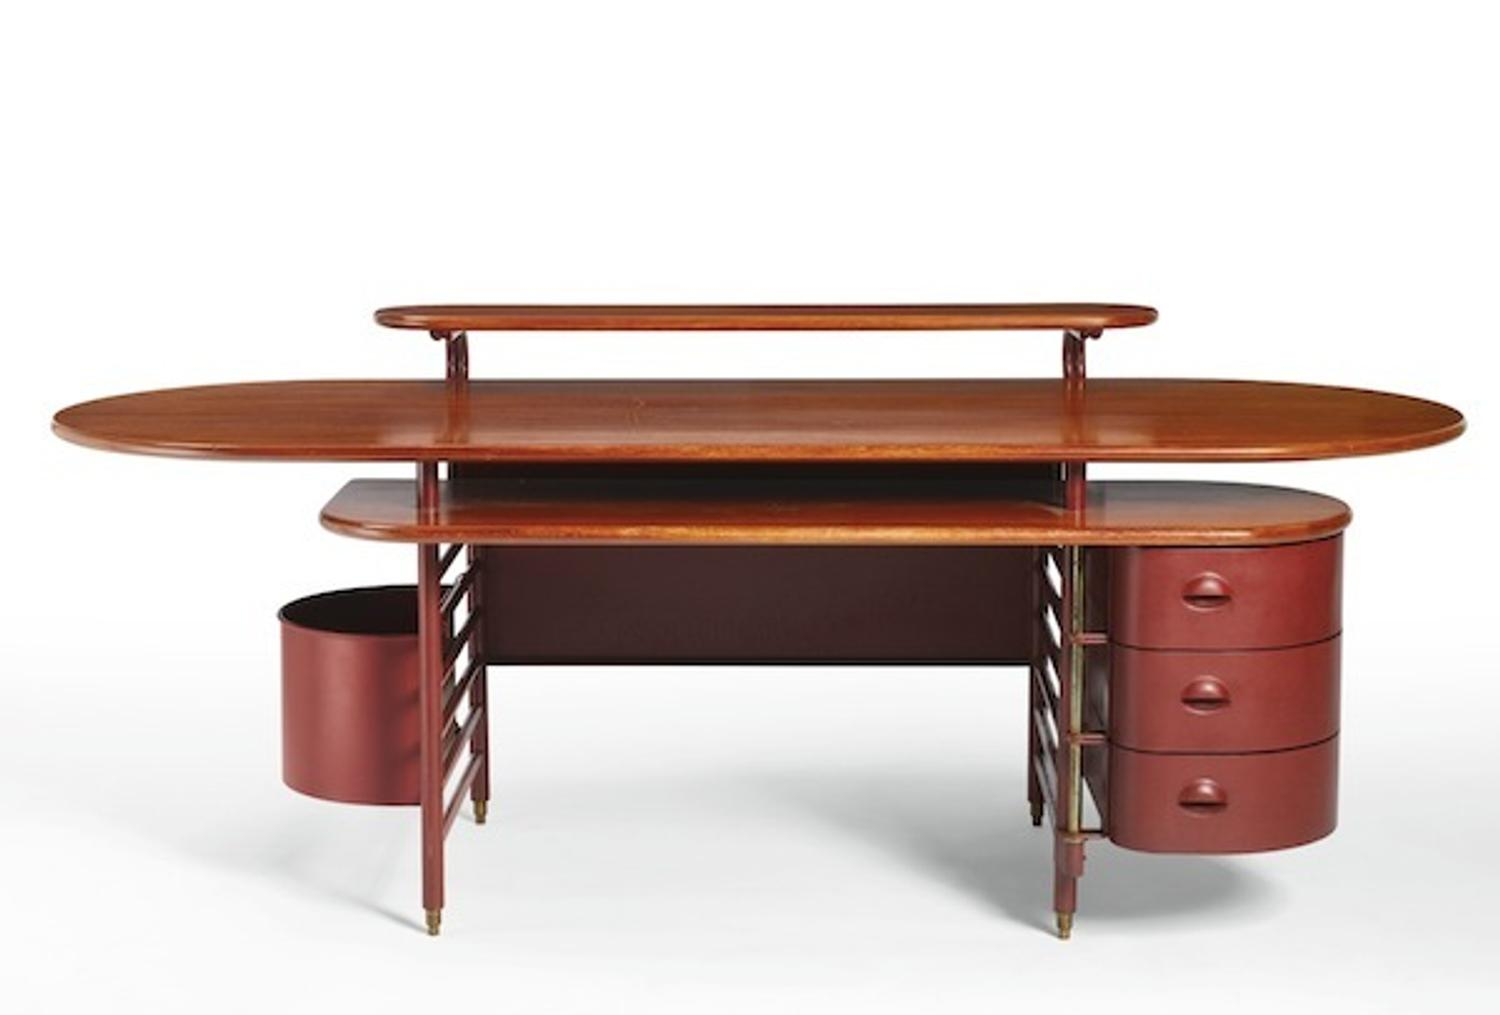 Sotheby 39 S Sued By C Johnson Over Frank Lloyd Wright Furniture Artfixdaily News Feed